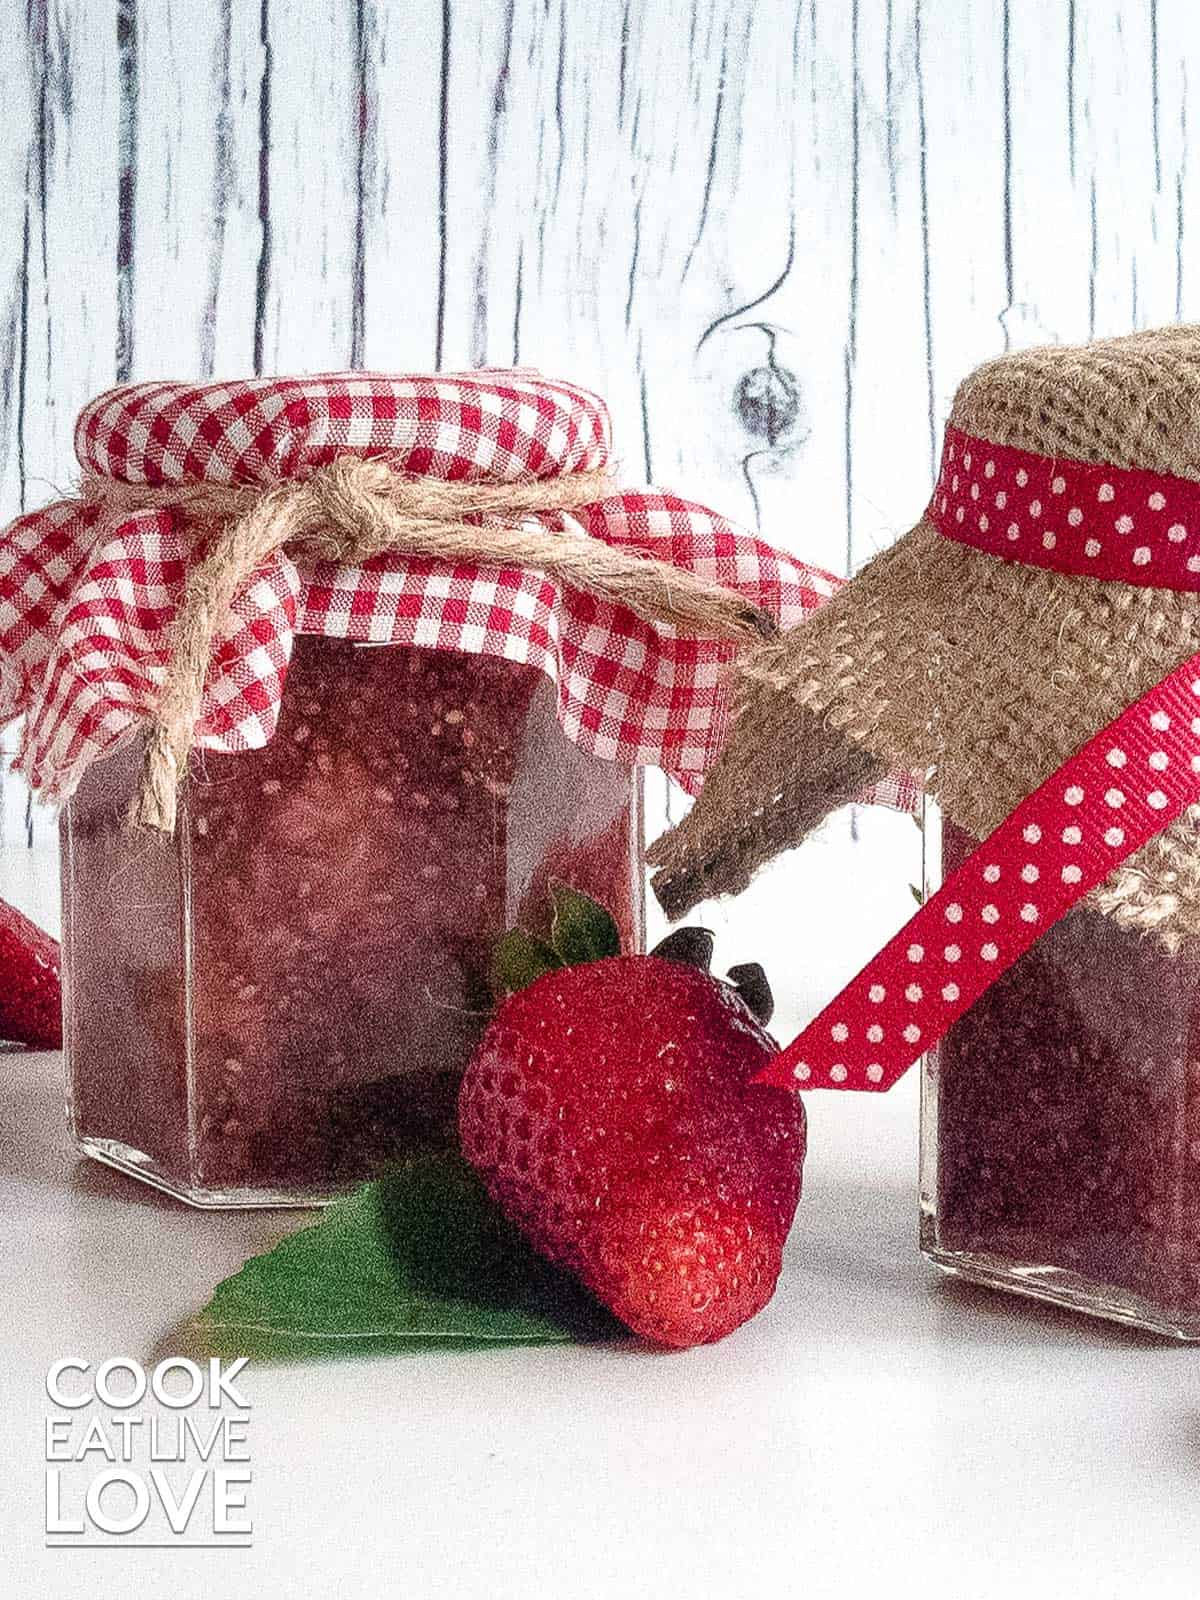 Strawberry jam with fresh berries in front make easy healthy homemade food gifts.